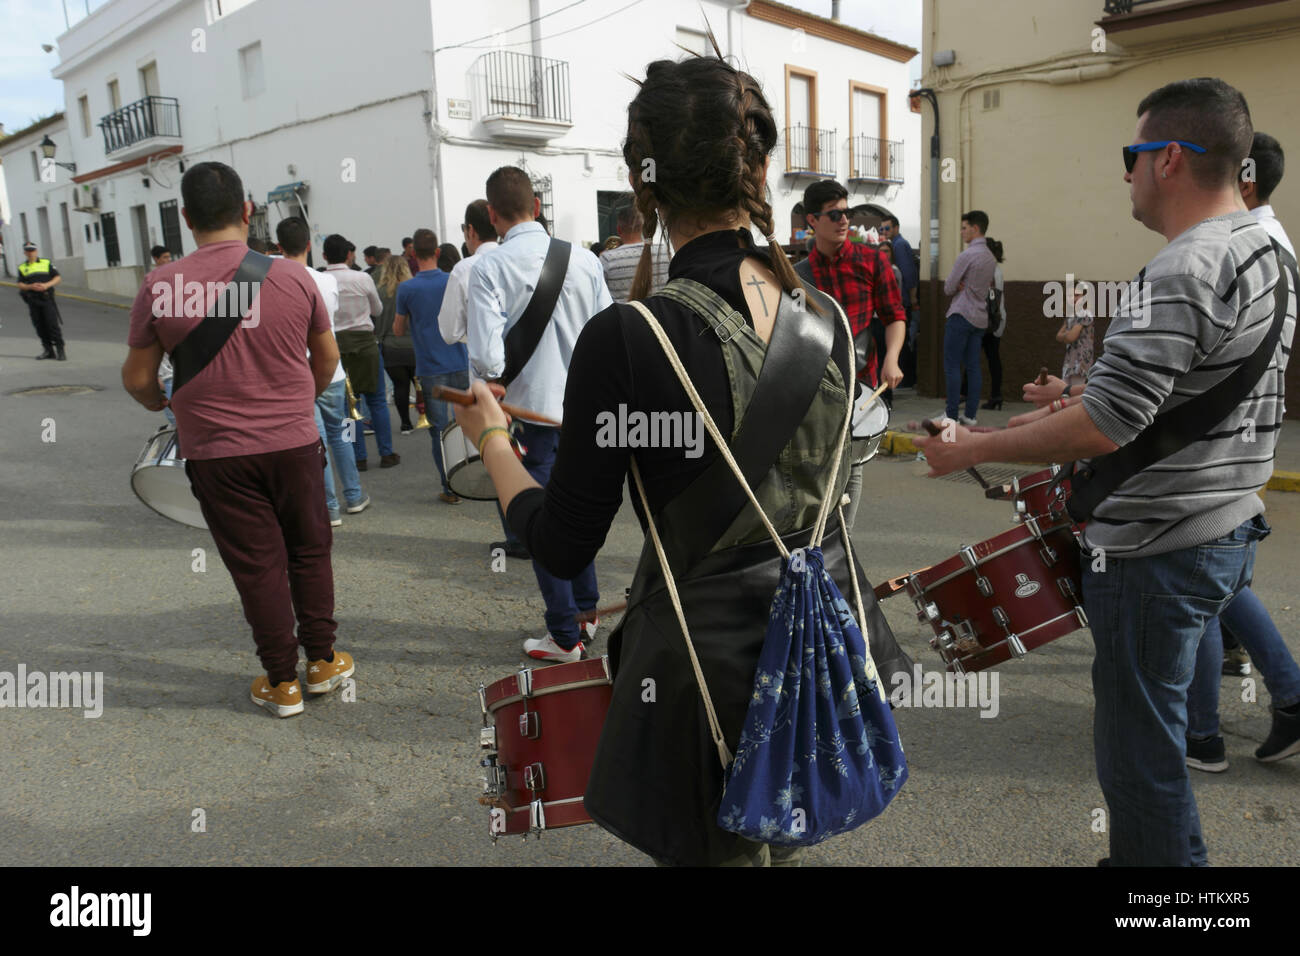 Parade with music in Trigueros, Huelva Stock Photo